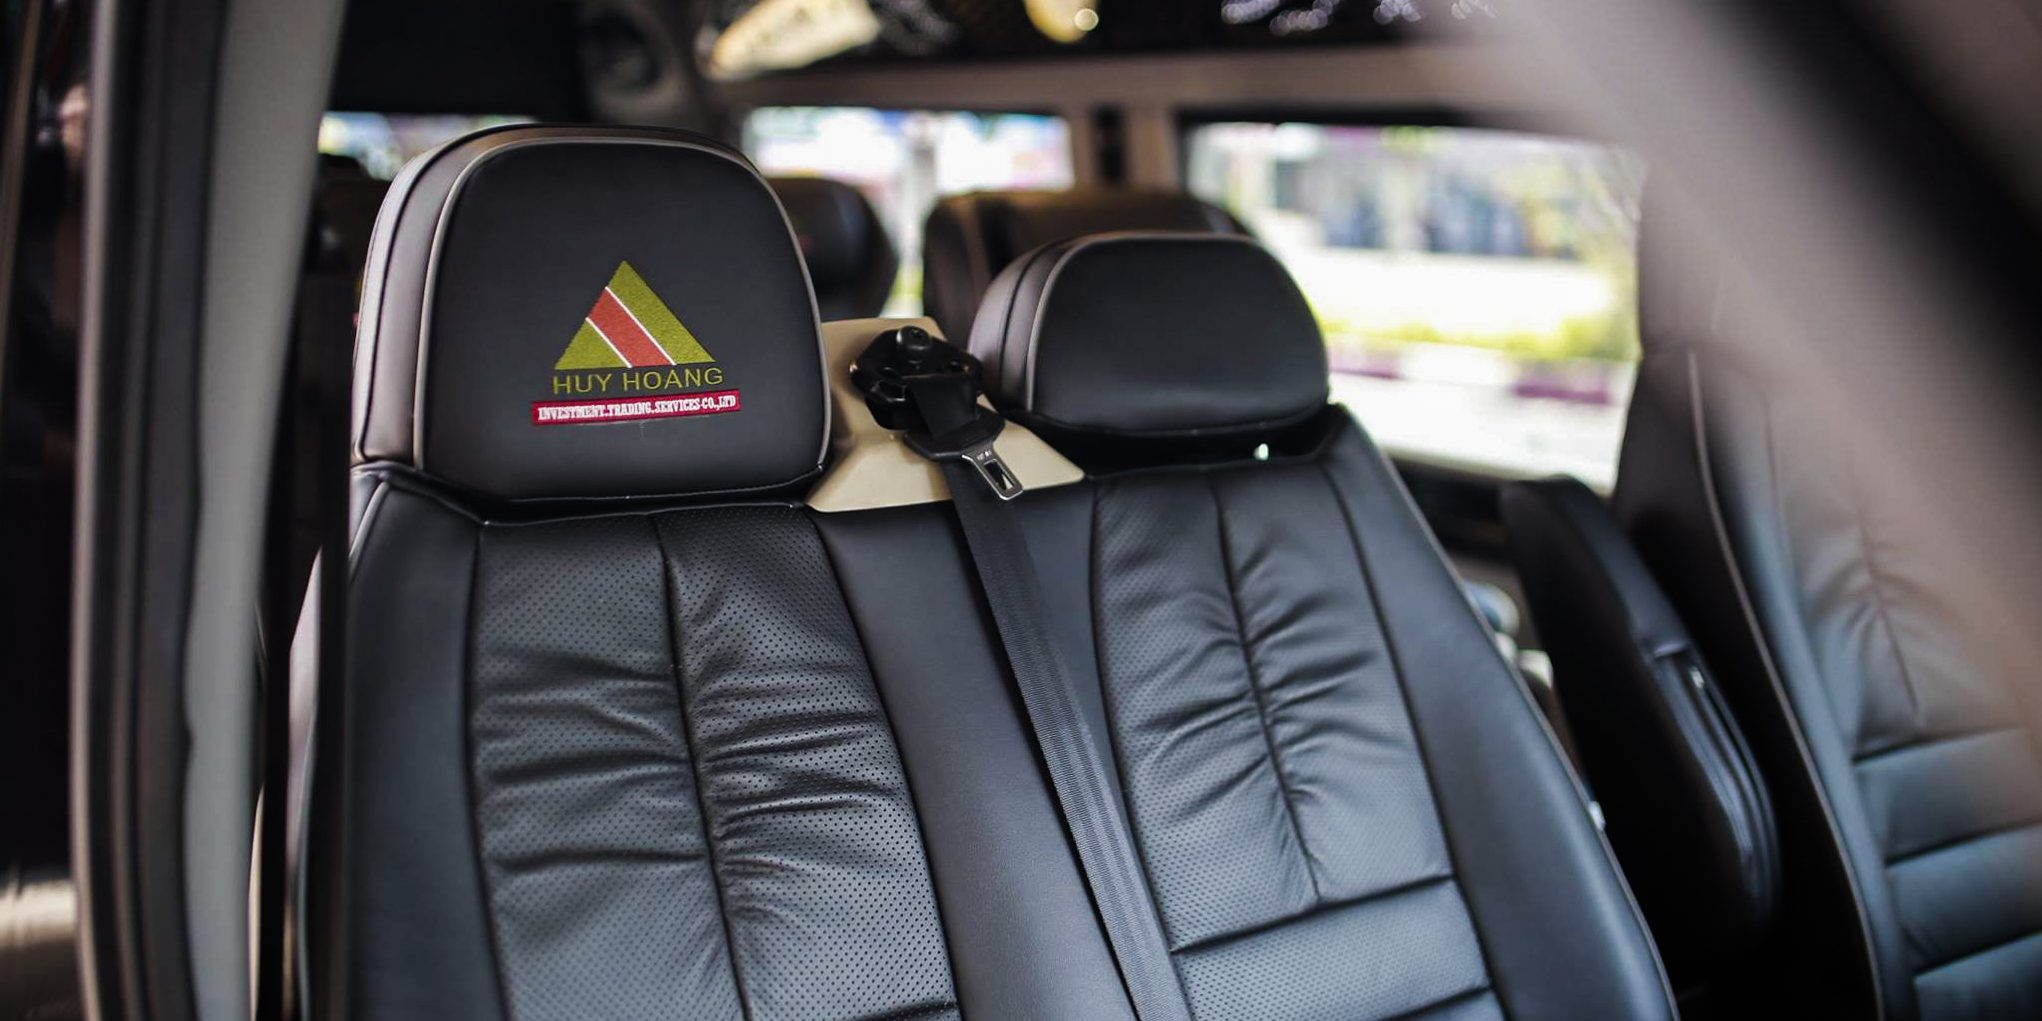 The interior of Huy Hoang limousine